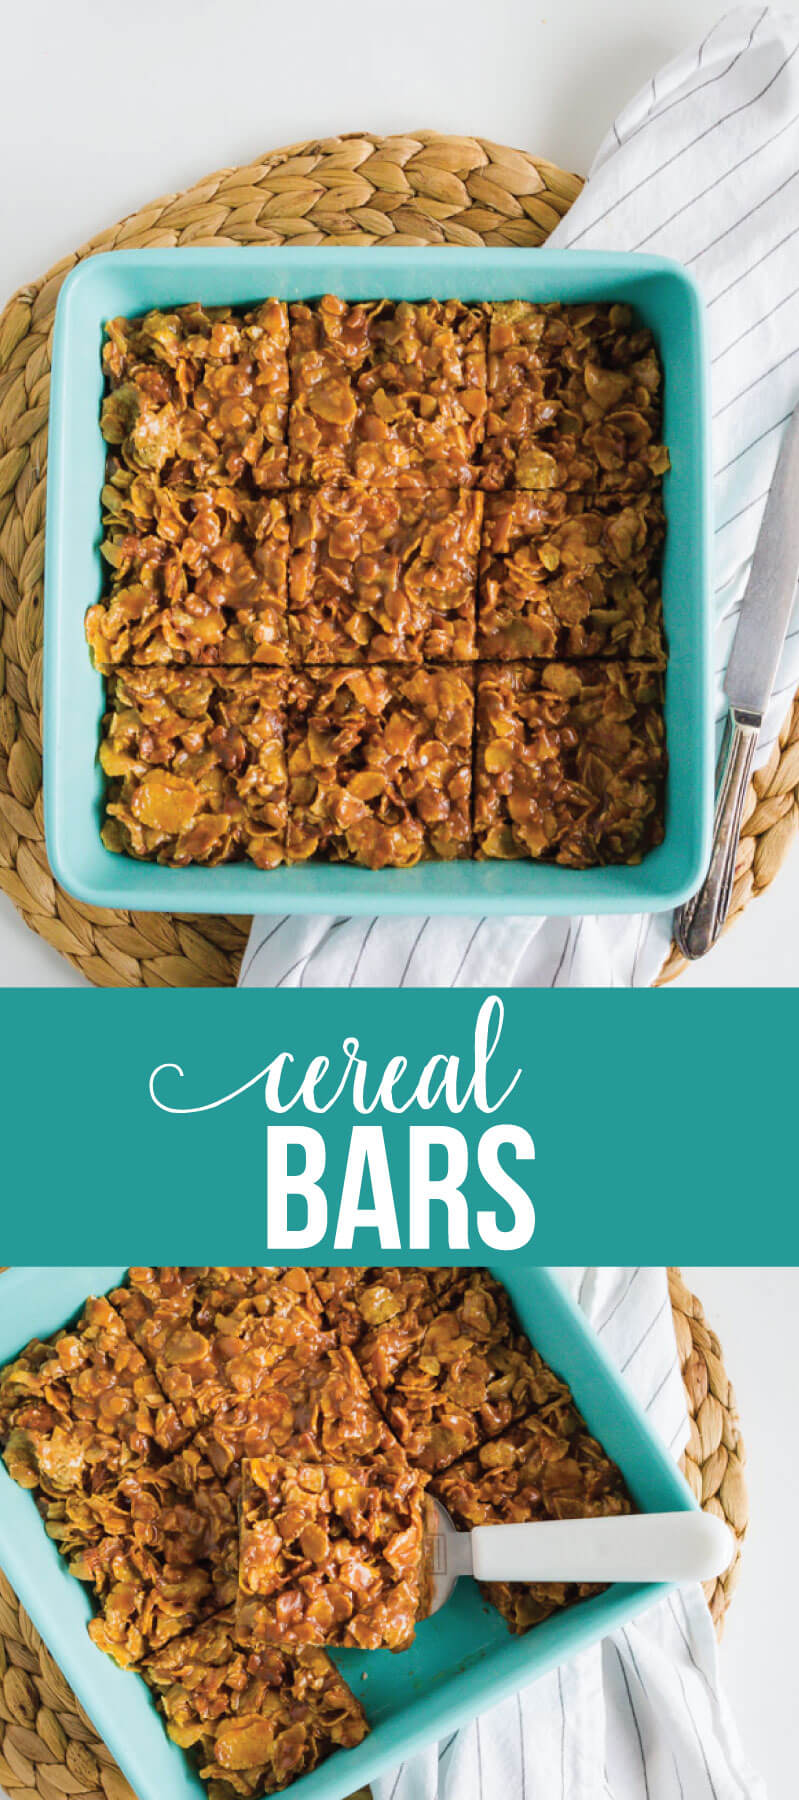 Easy and sweet cereal bar recipe- make for a dessert or for an after school snack. Your family will love this simple recipe! via www.thirtyhandmadedays.com